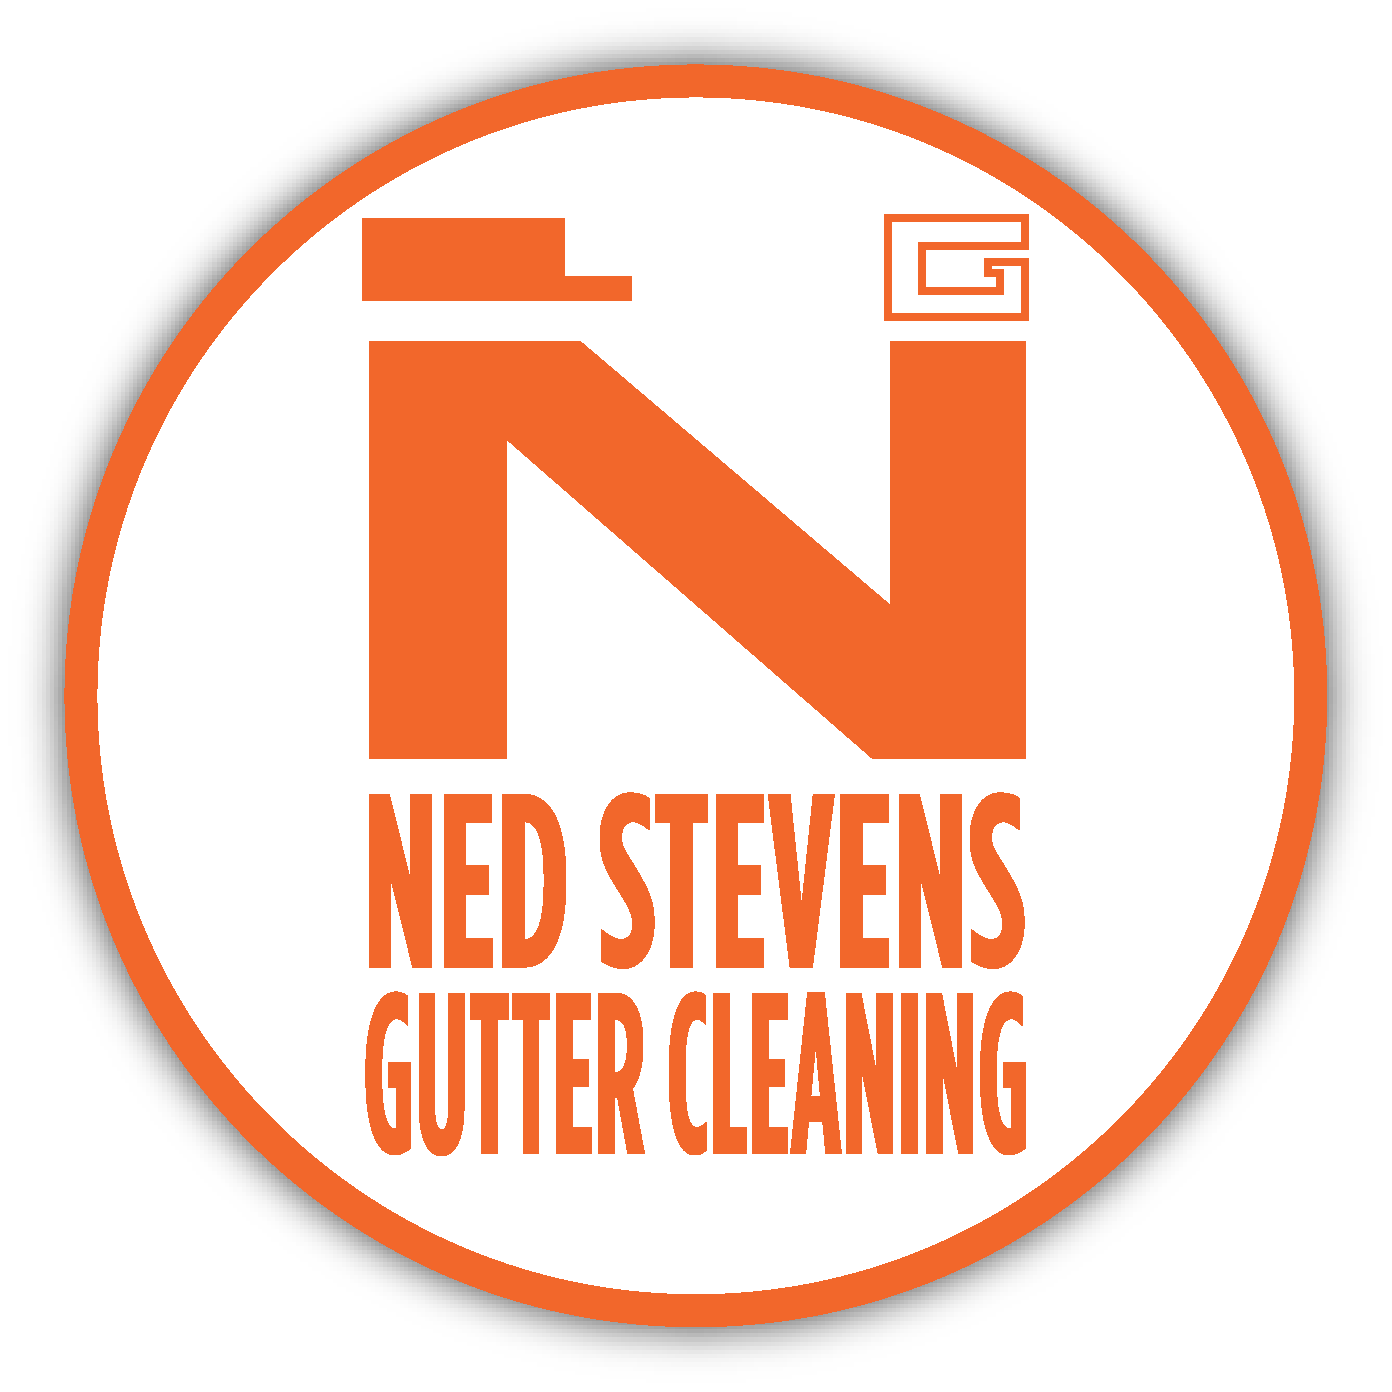 Ned Stevens Gutter Cleaning - Pennsylvania